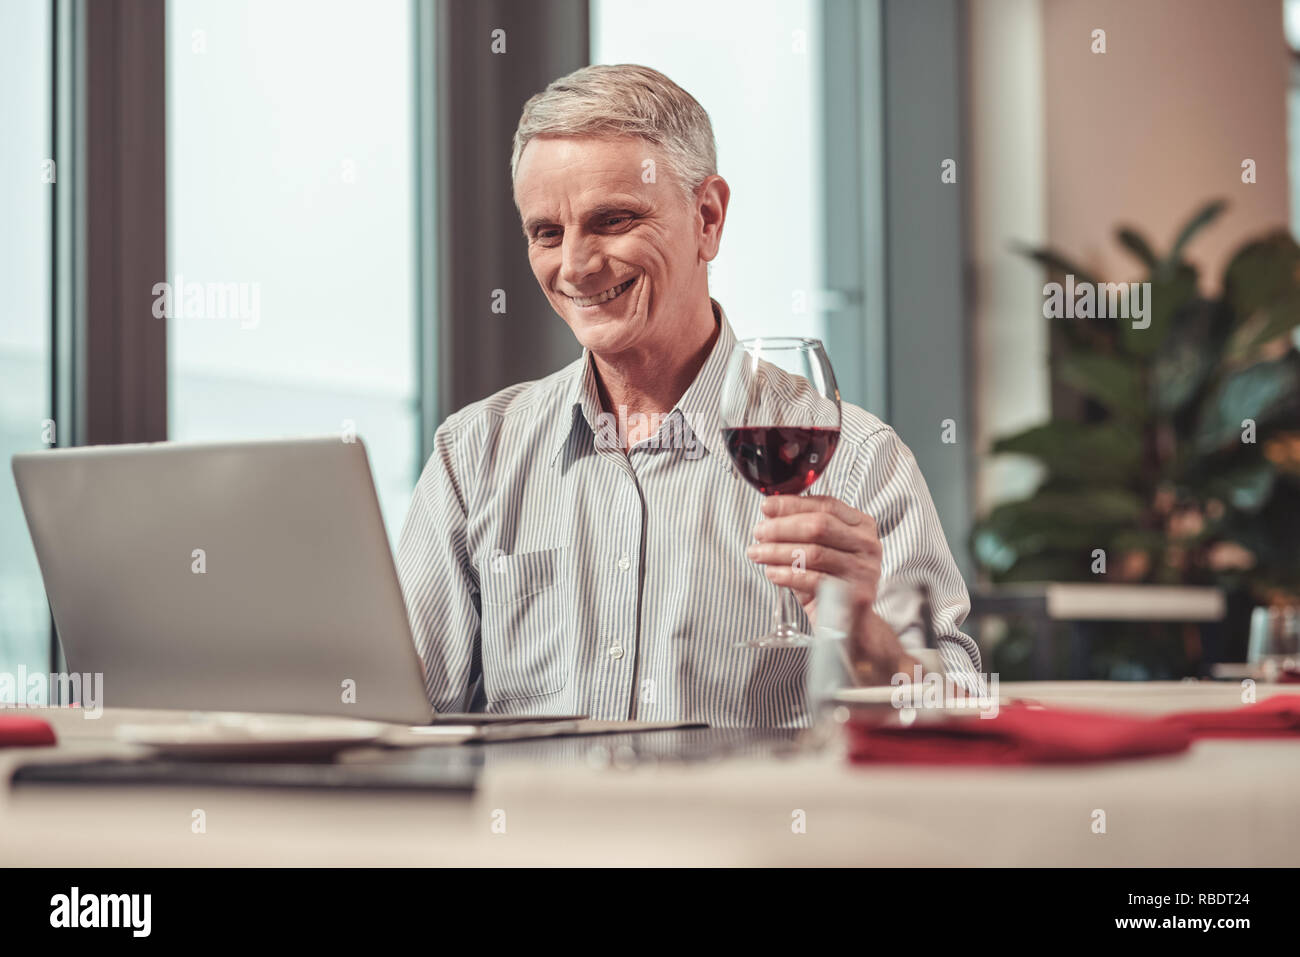 Cheer Up Stock Photos Cheer Up Stock Images Page 2 Alamy